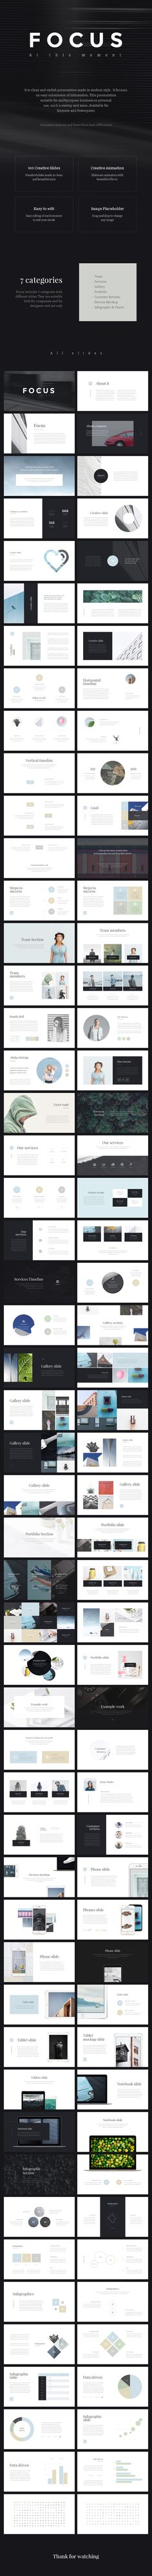 Focus PowerPoint Presentation A free presentation template